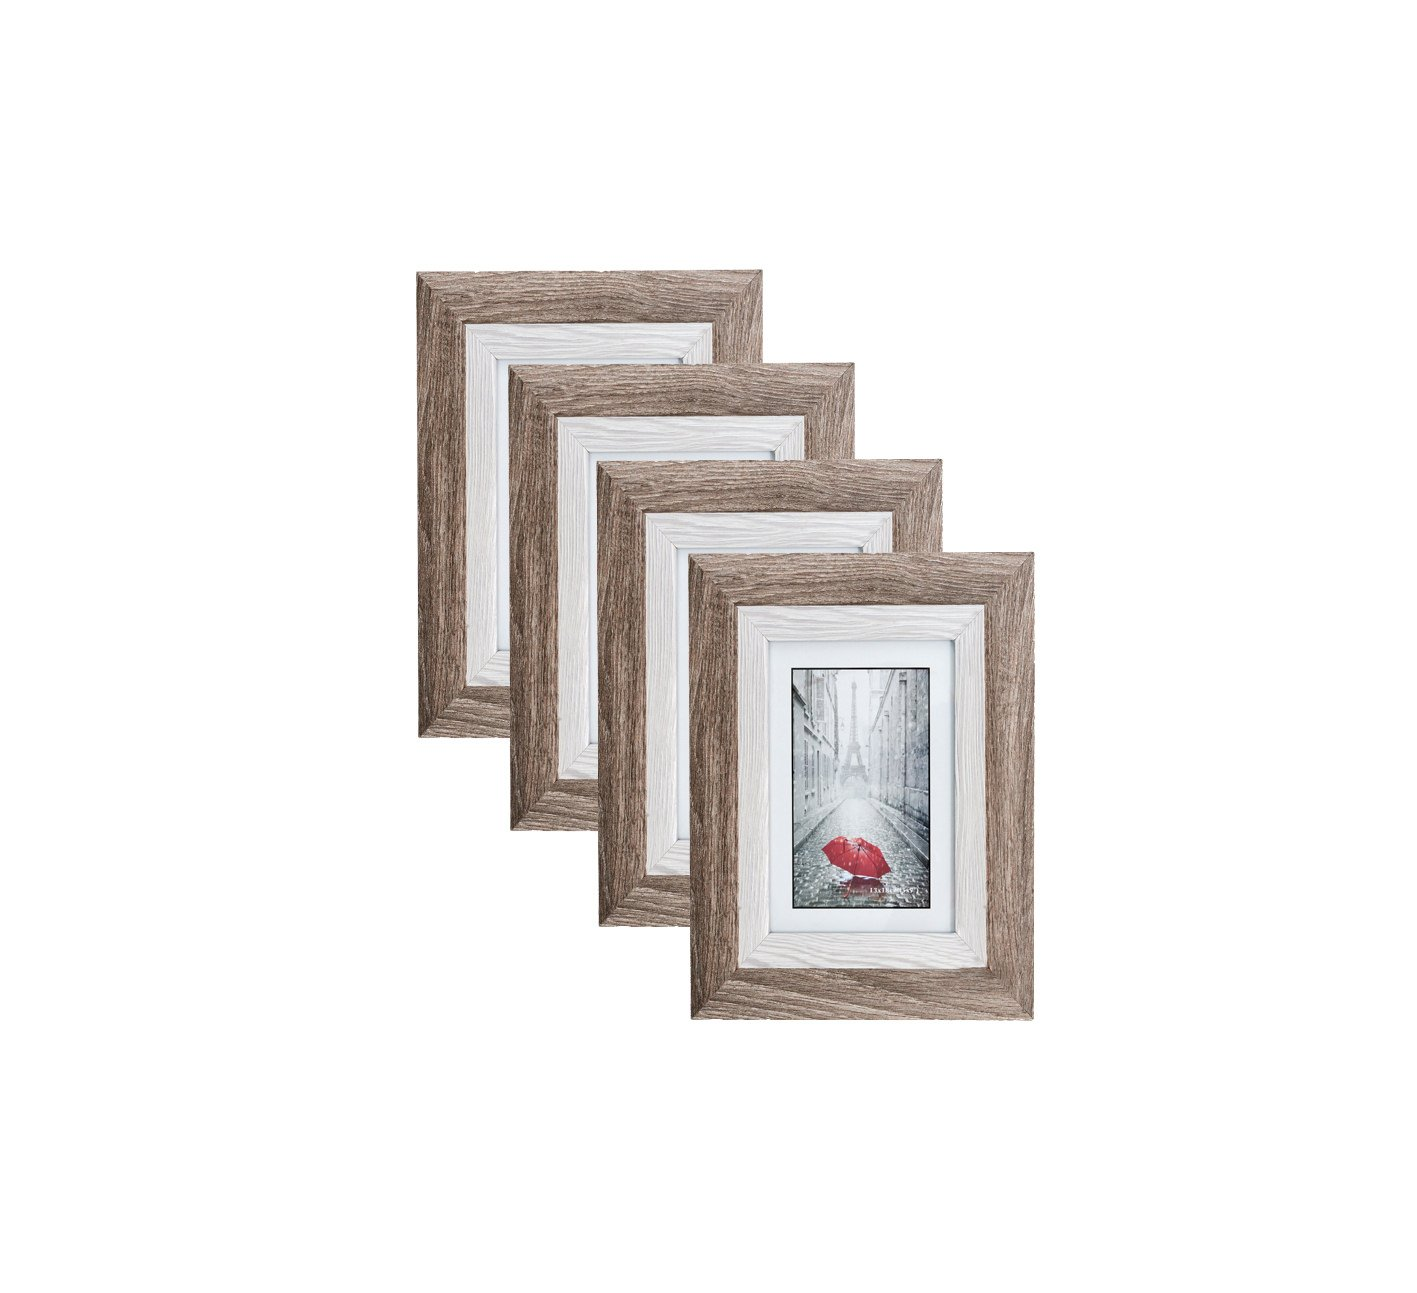 Distressed Brown MDF Wood Picture Frame 4X6 (4 pc) Display with Photo Glass Front, Easel Back, and Wall Hang Clip | 4 Piece Set